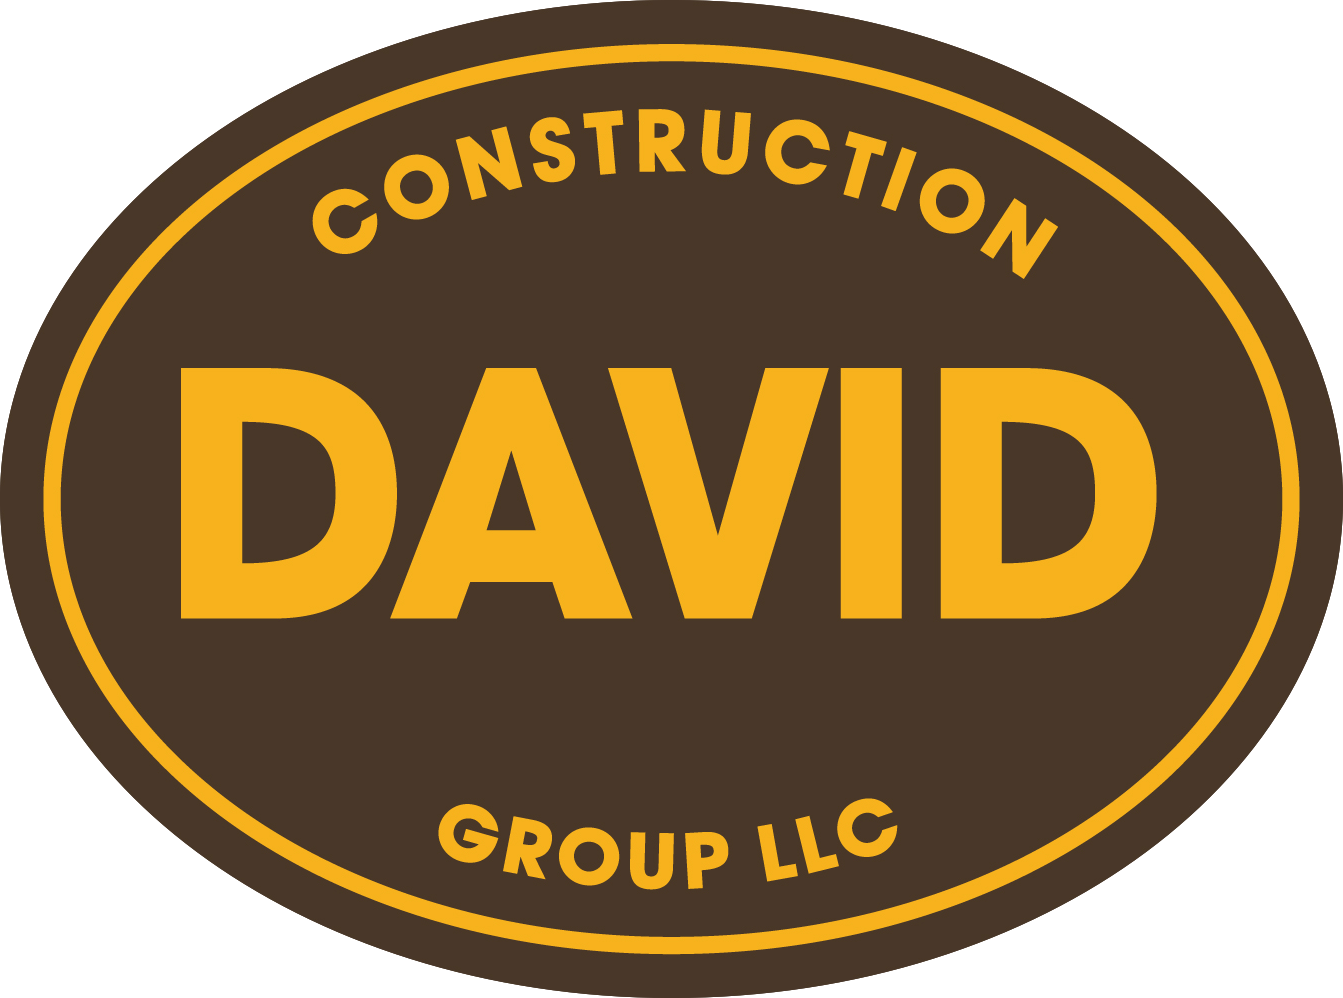 David Construction Group LLC